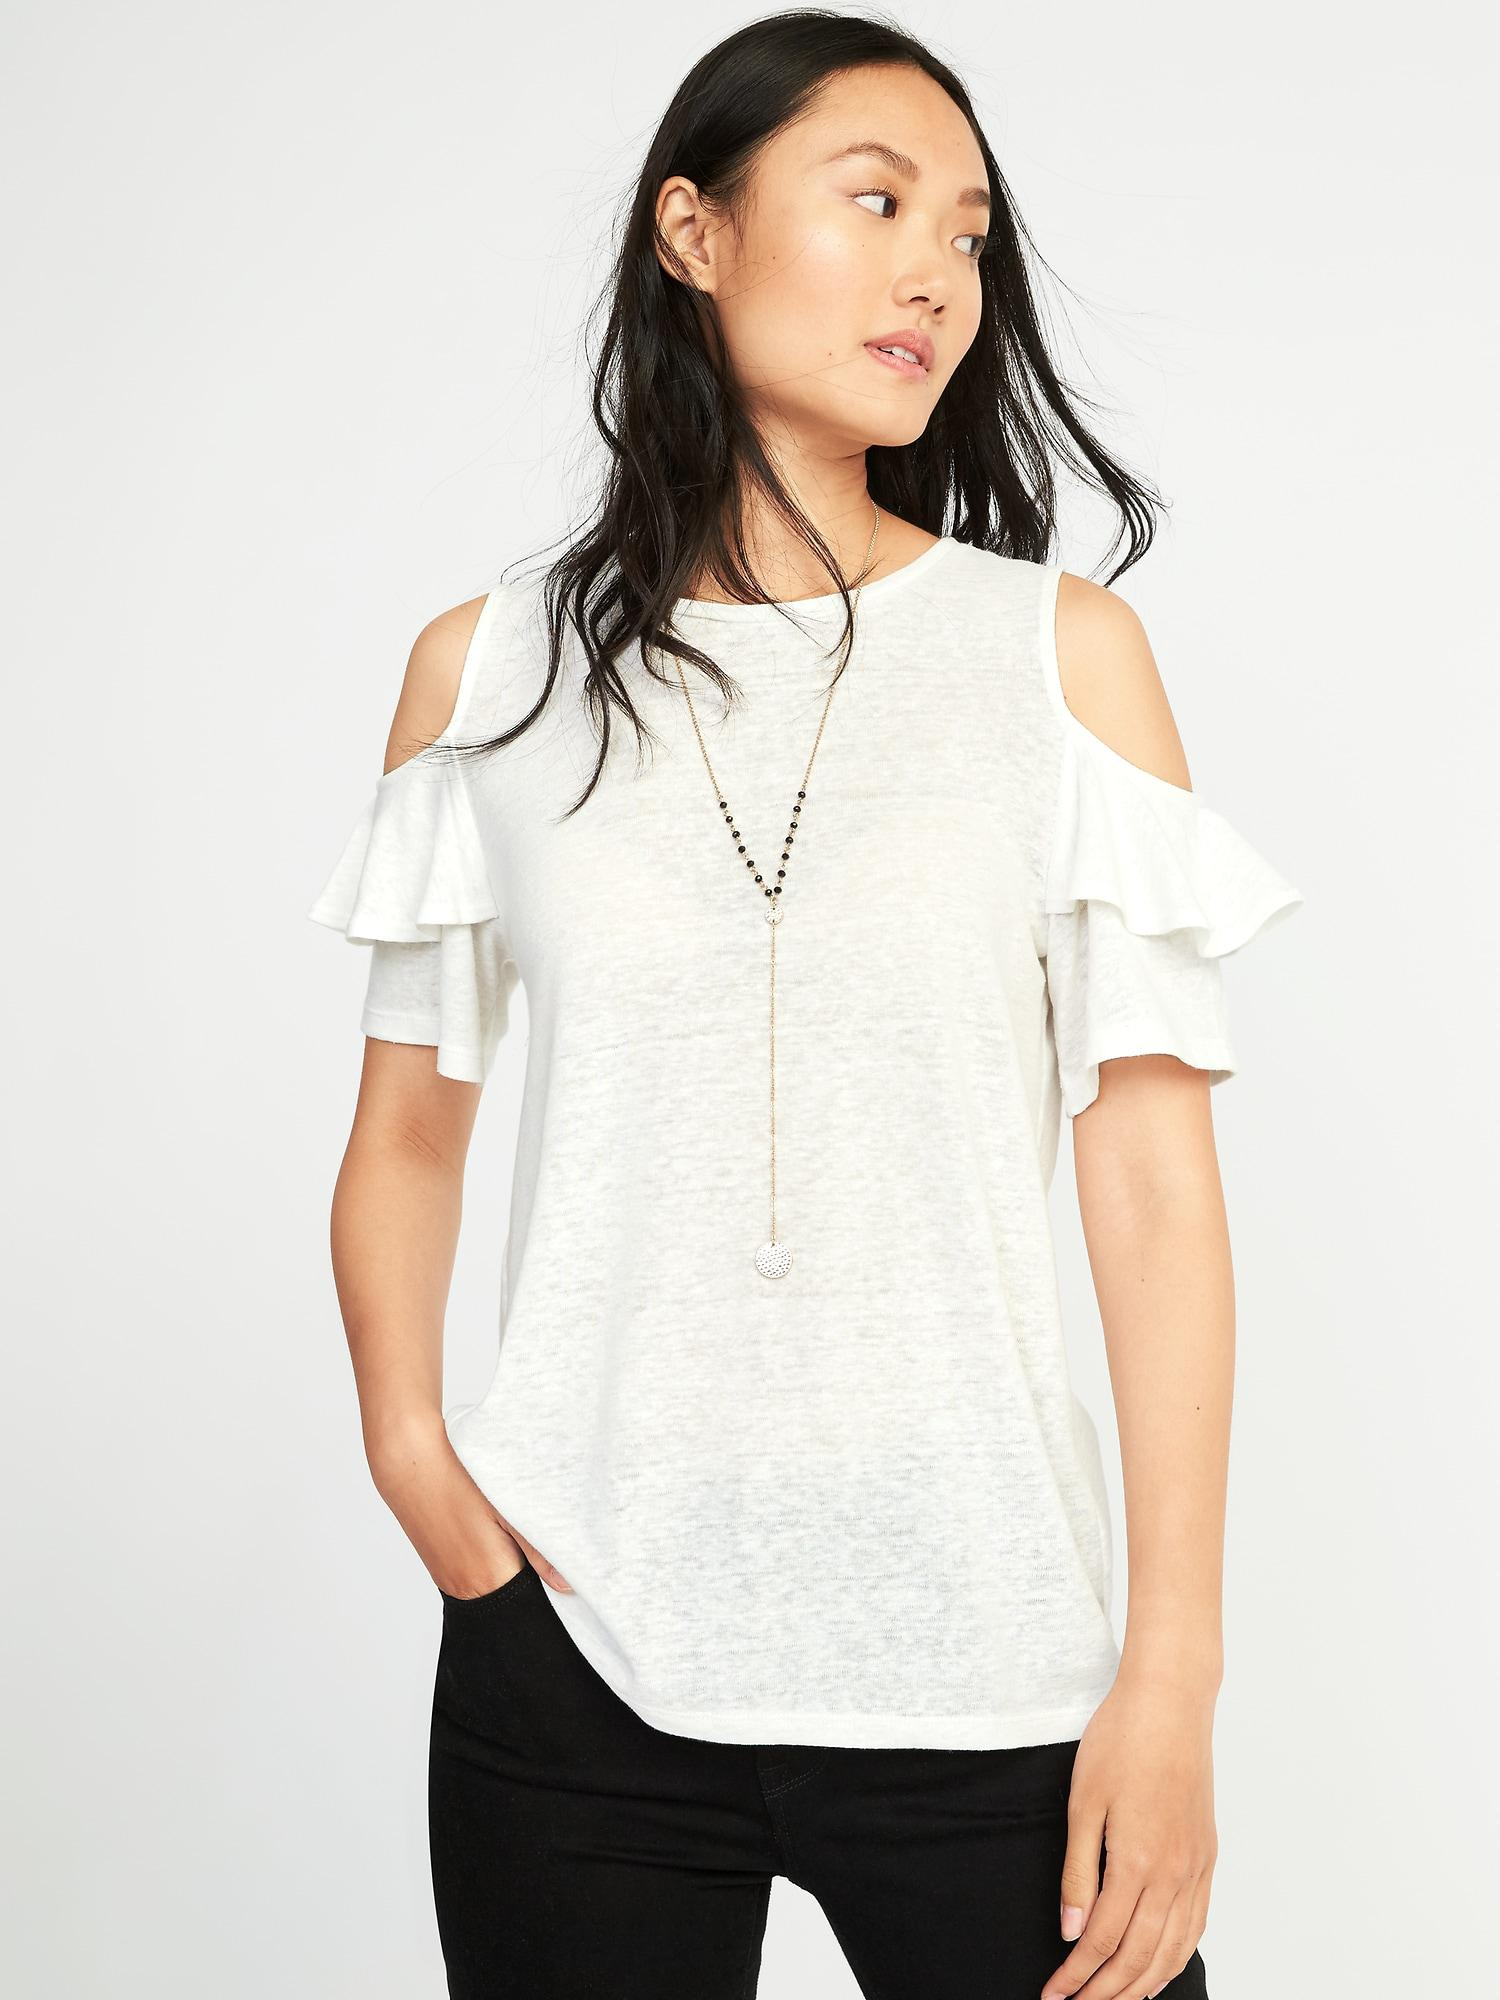 504a9b62f5ccc0 Lyst - Old Navy Relaxed Linen-blend Cold-shoulder Top in White